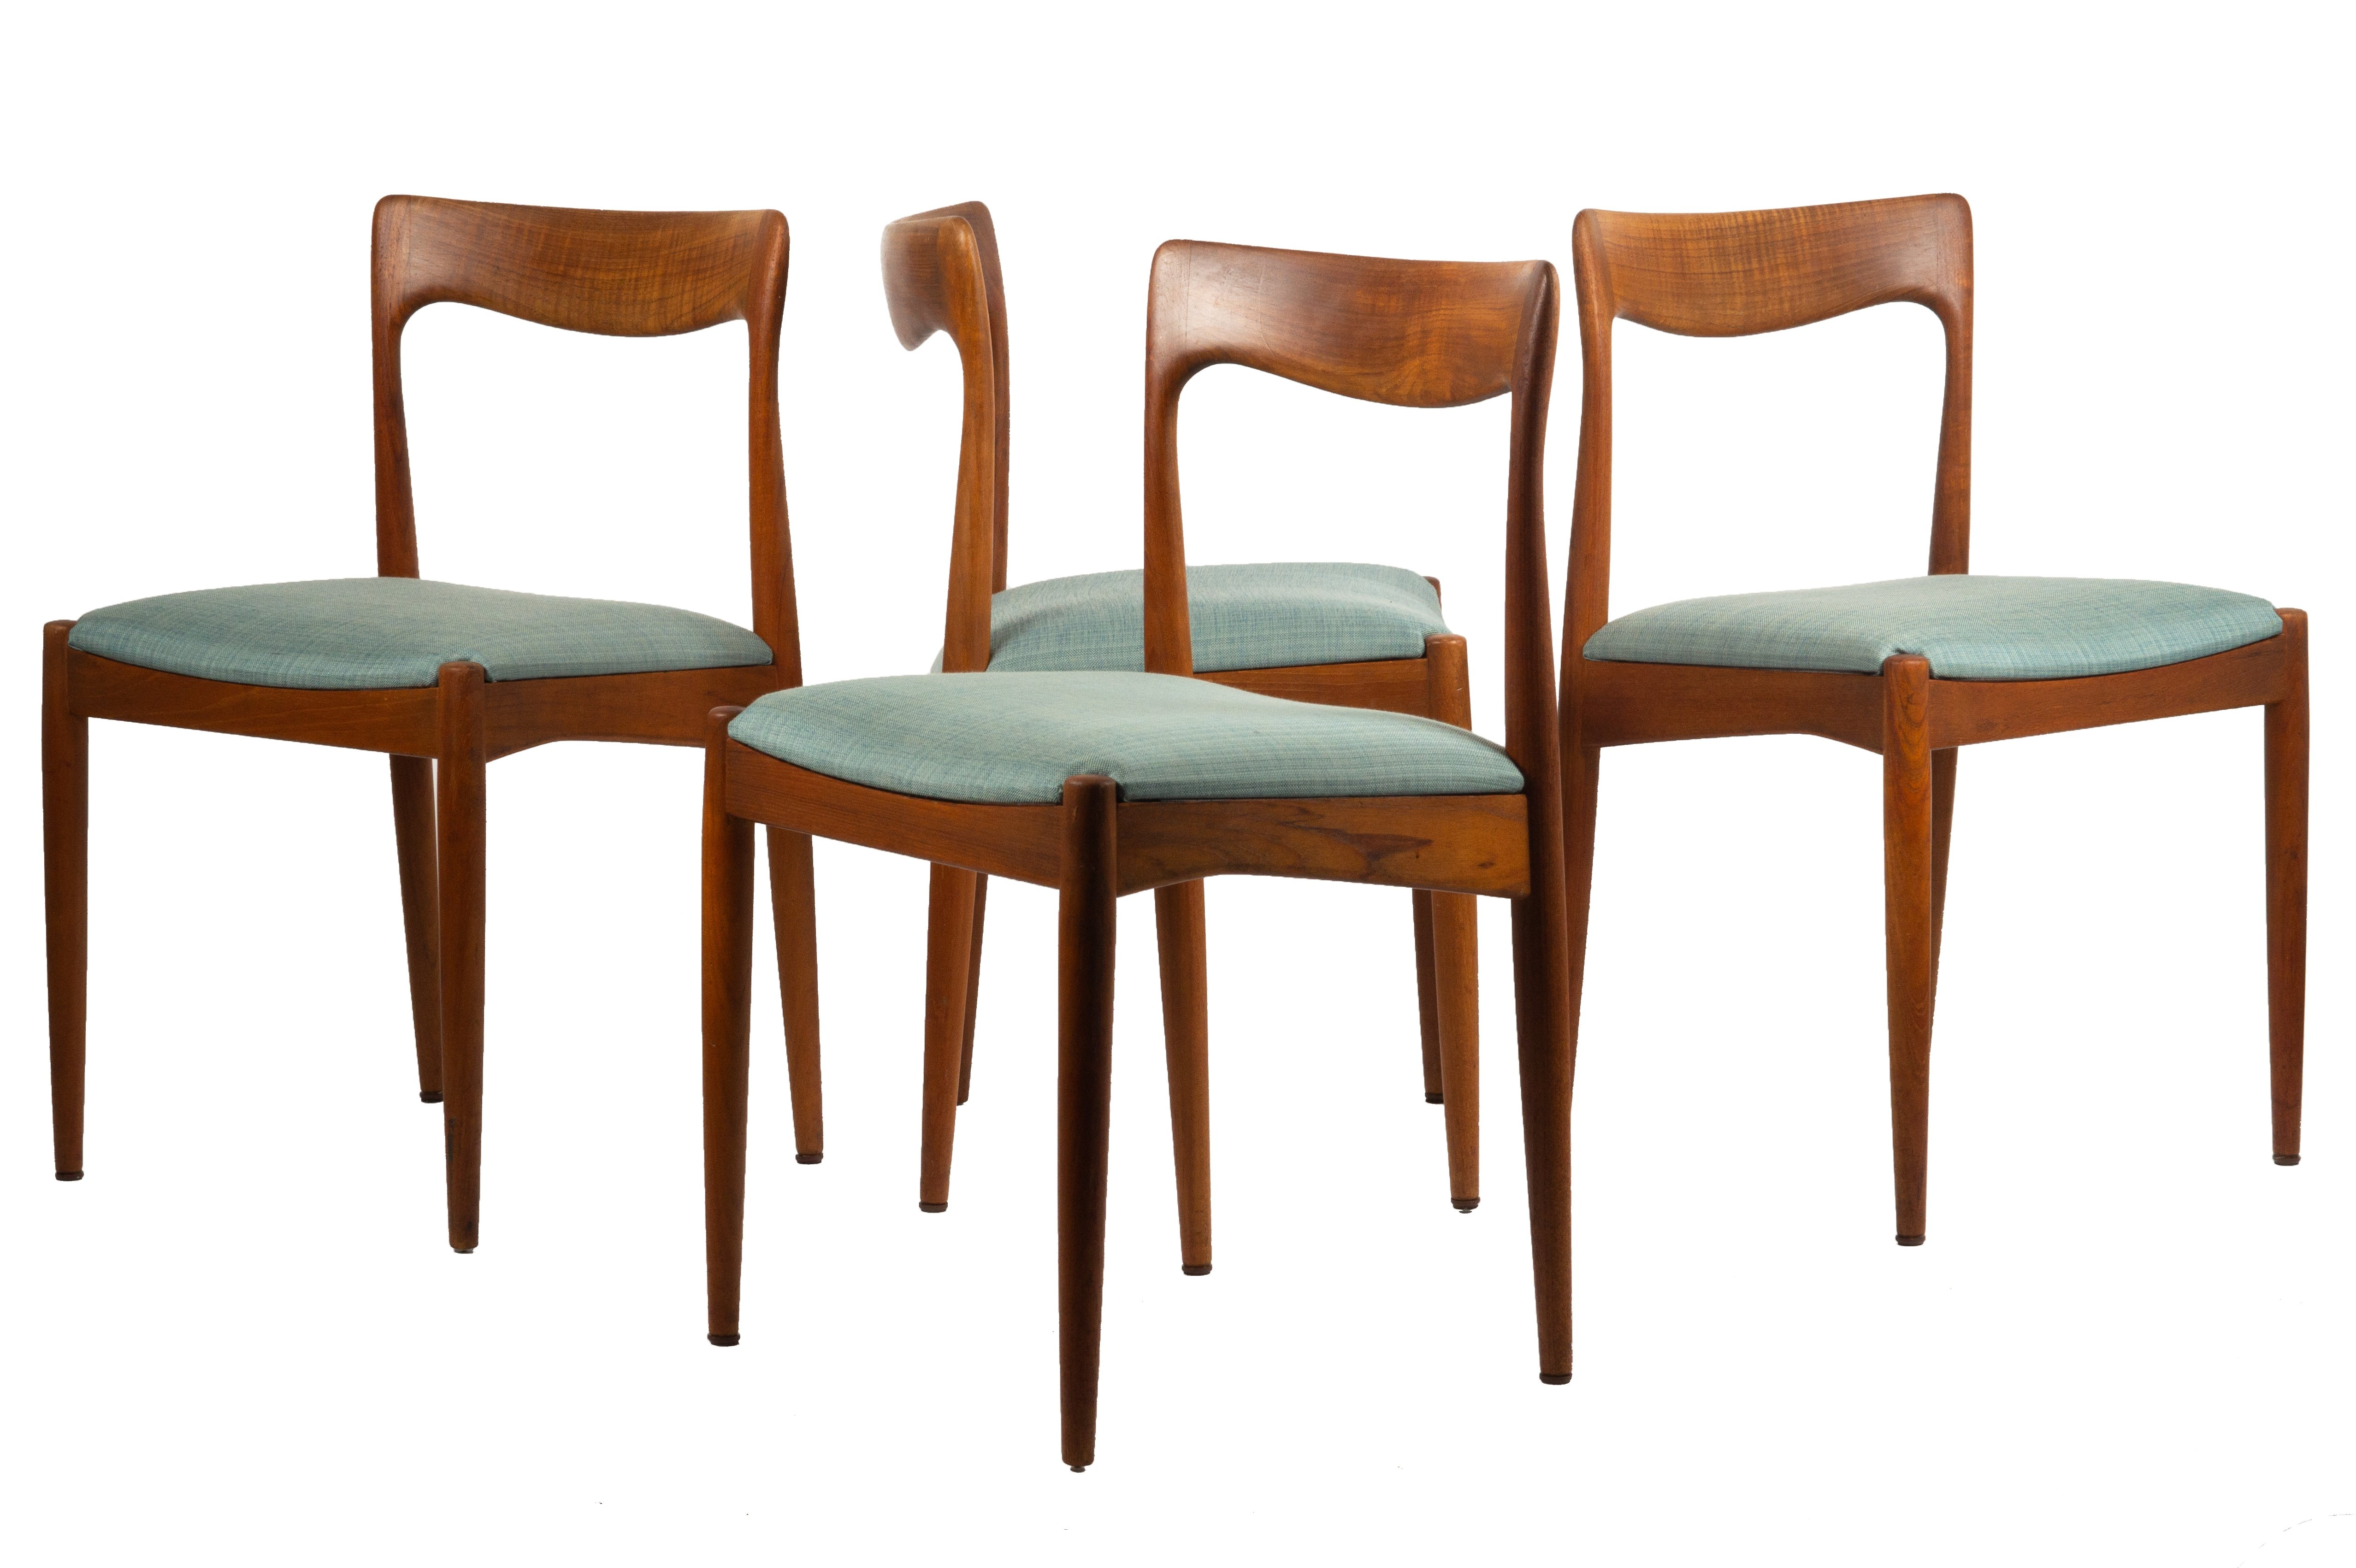 Set Of 4 Dining Chairs By Arne Vodder For Vamo 1960s 138604